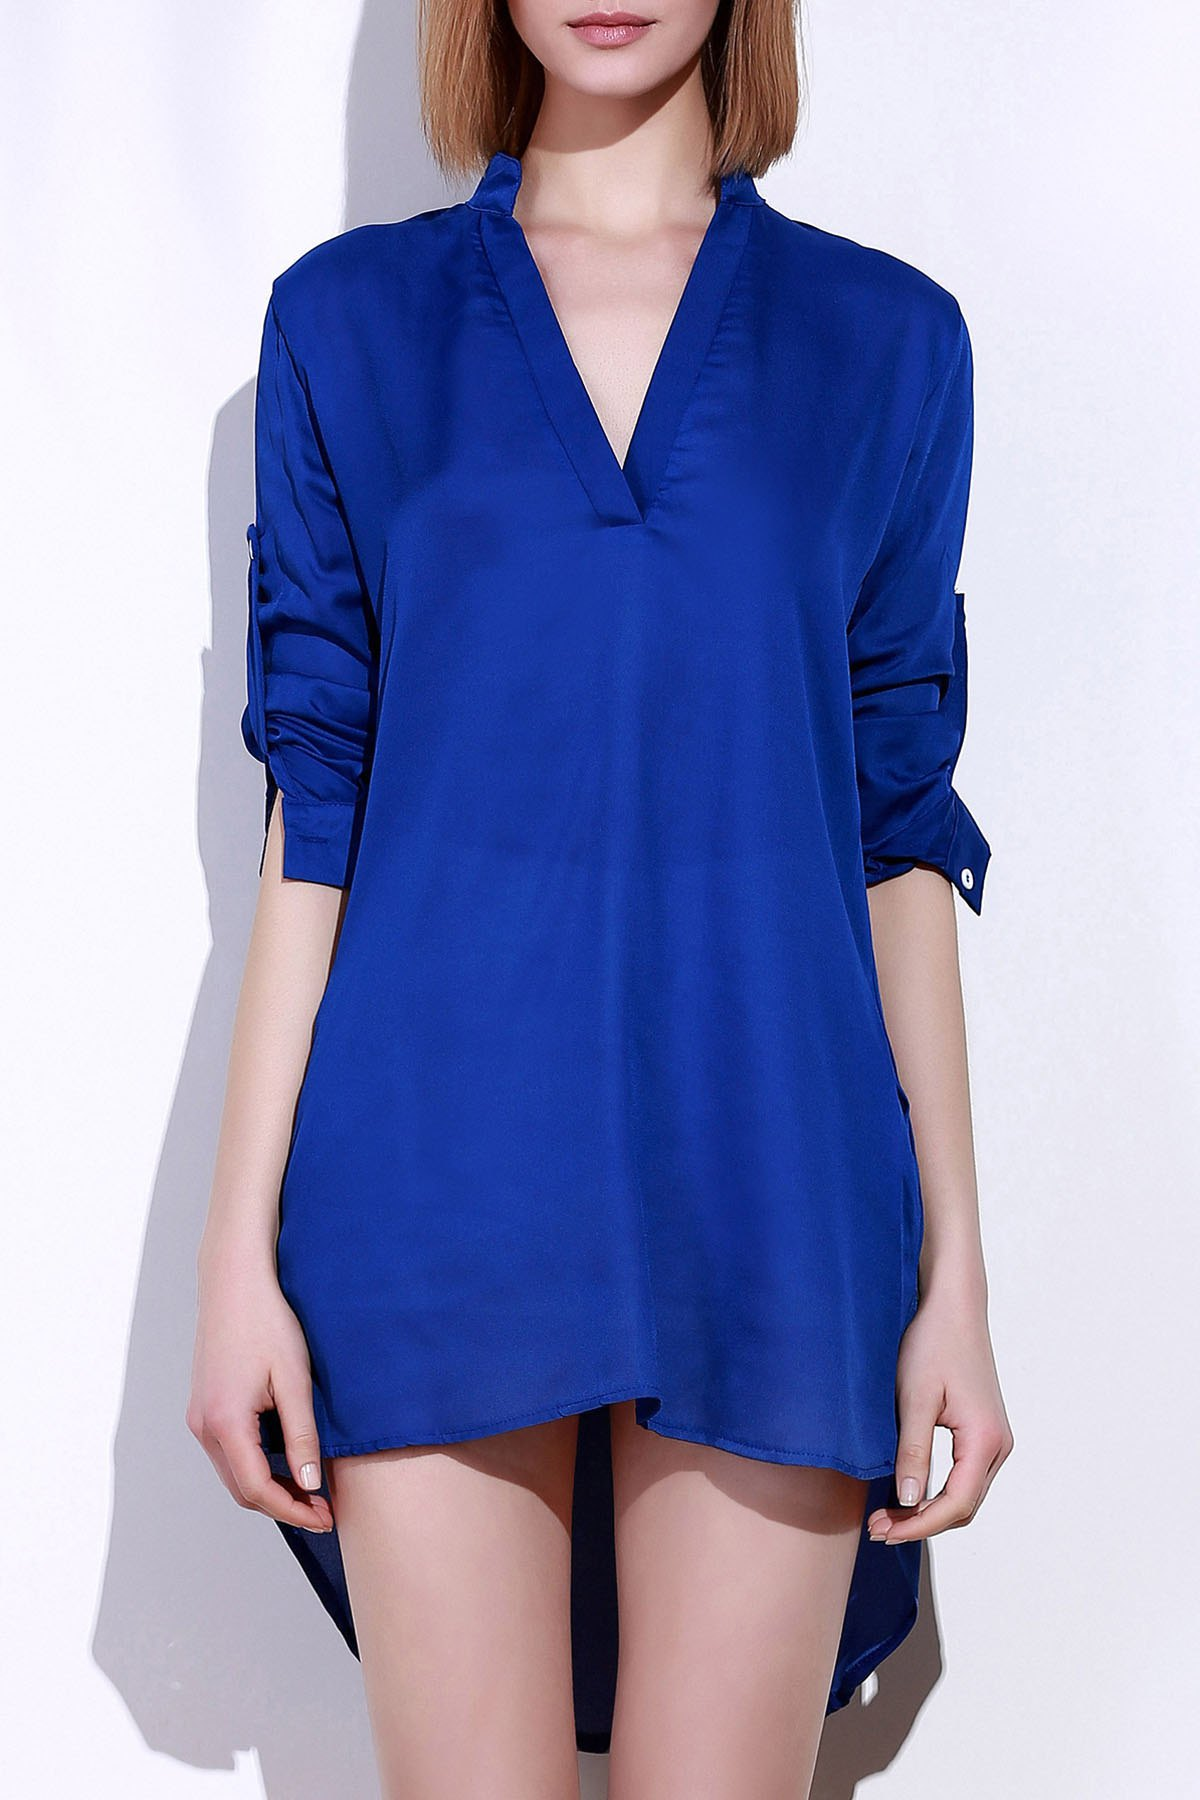 Long Sleeve Plunging Neck Loose-Fitting Solid Color Women's Blouse - SAPPHIRE BLUE L